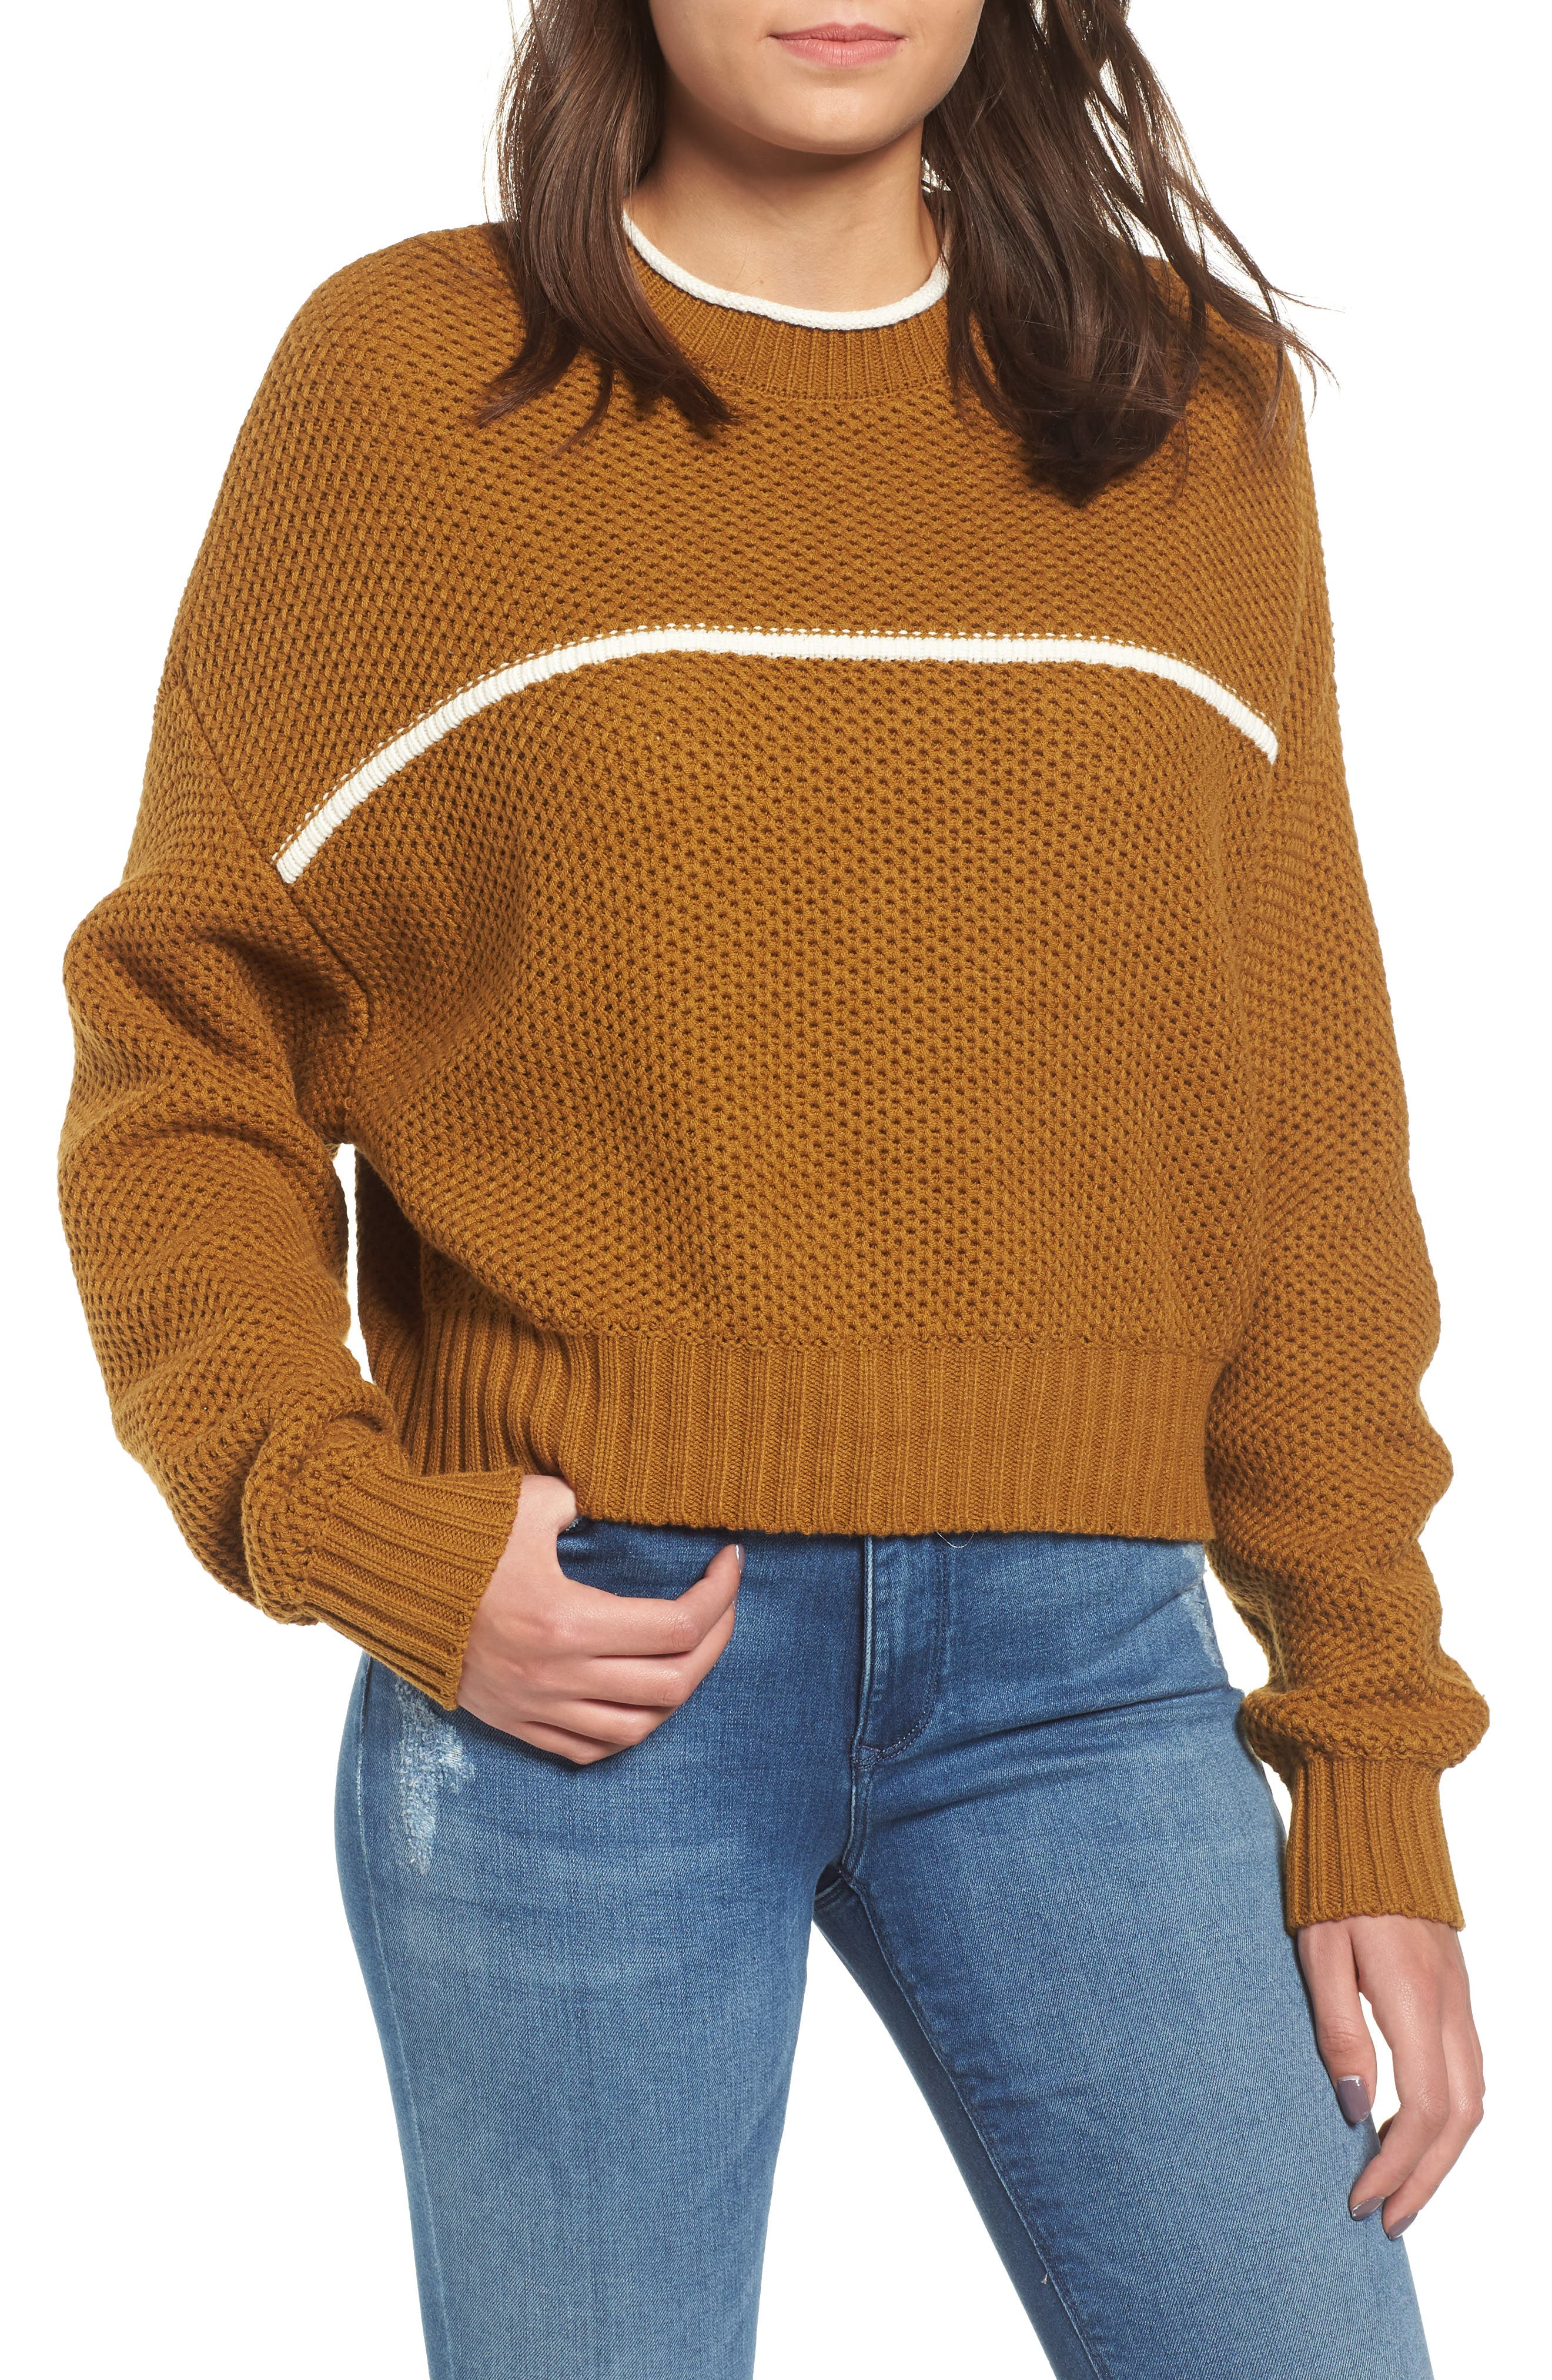 RVCA Jammer Seed Stitch Sweater in Beeswax